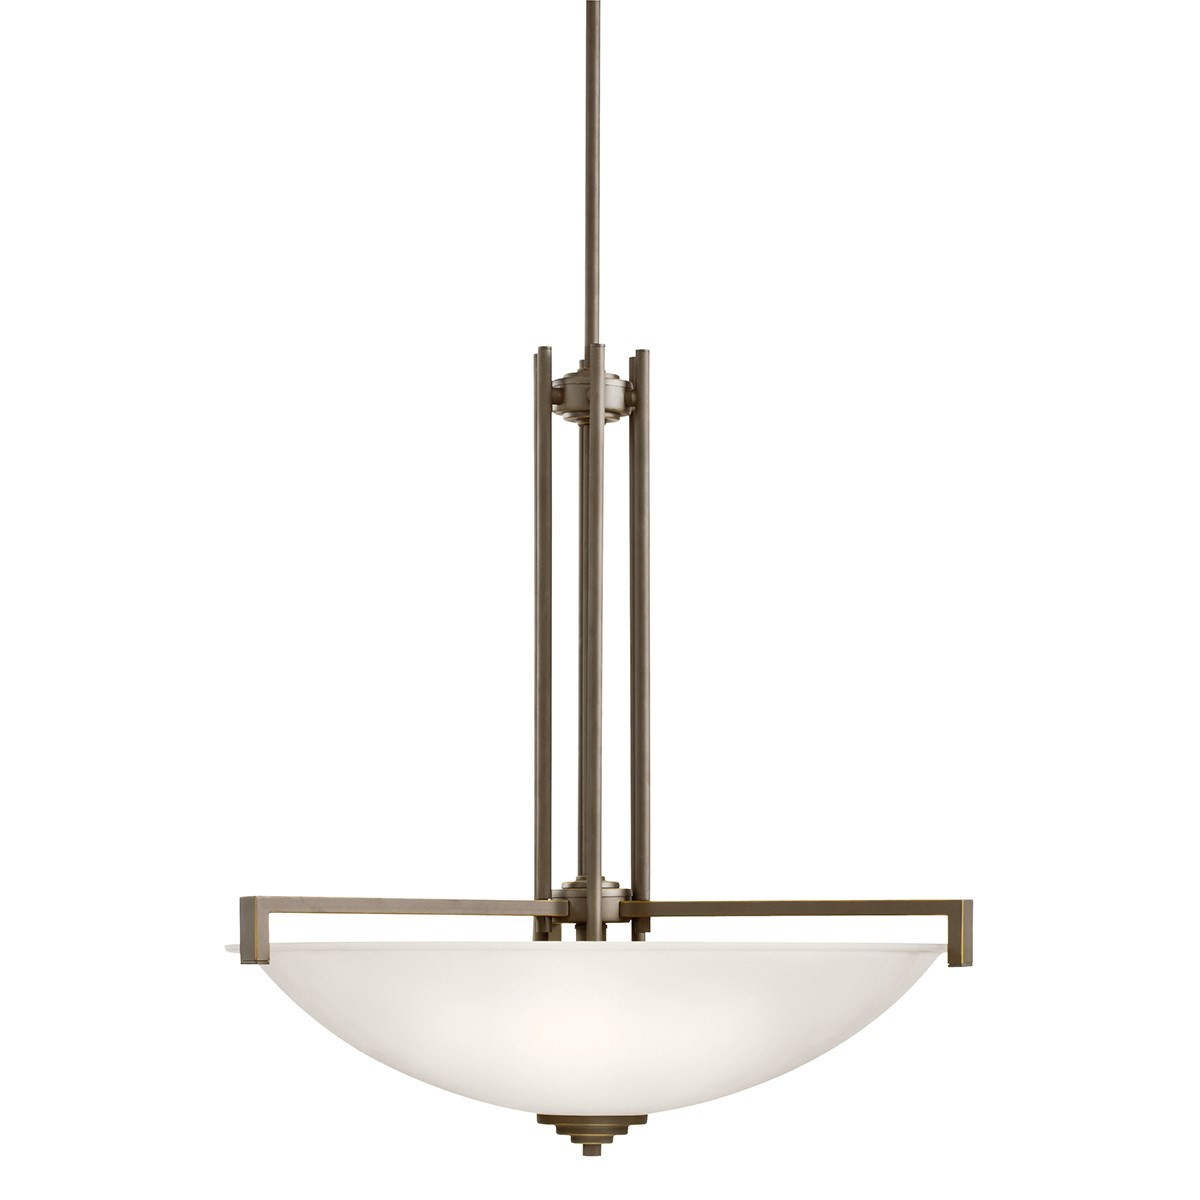 Kichler Eileen Eileen LED Four-Light Pendant Light with Satin Etched White Steel Shade - Olde Bronze (3299OZSL18)